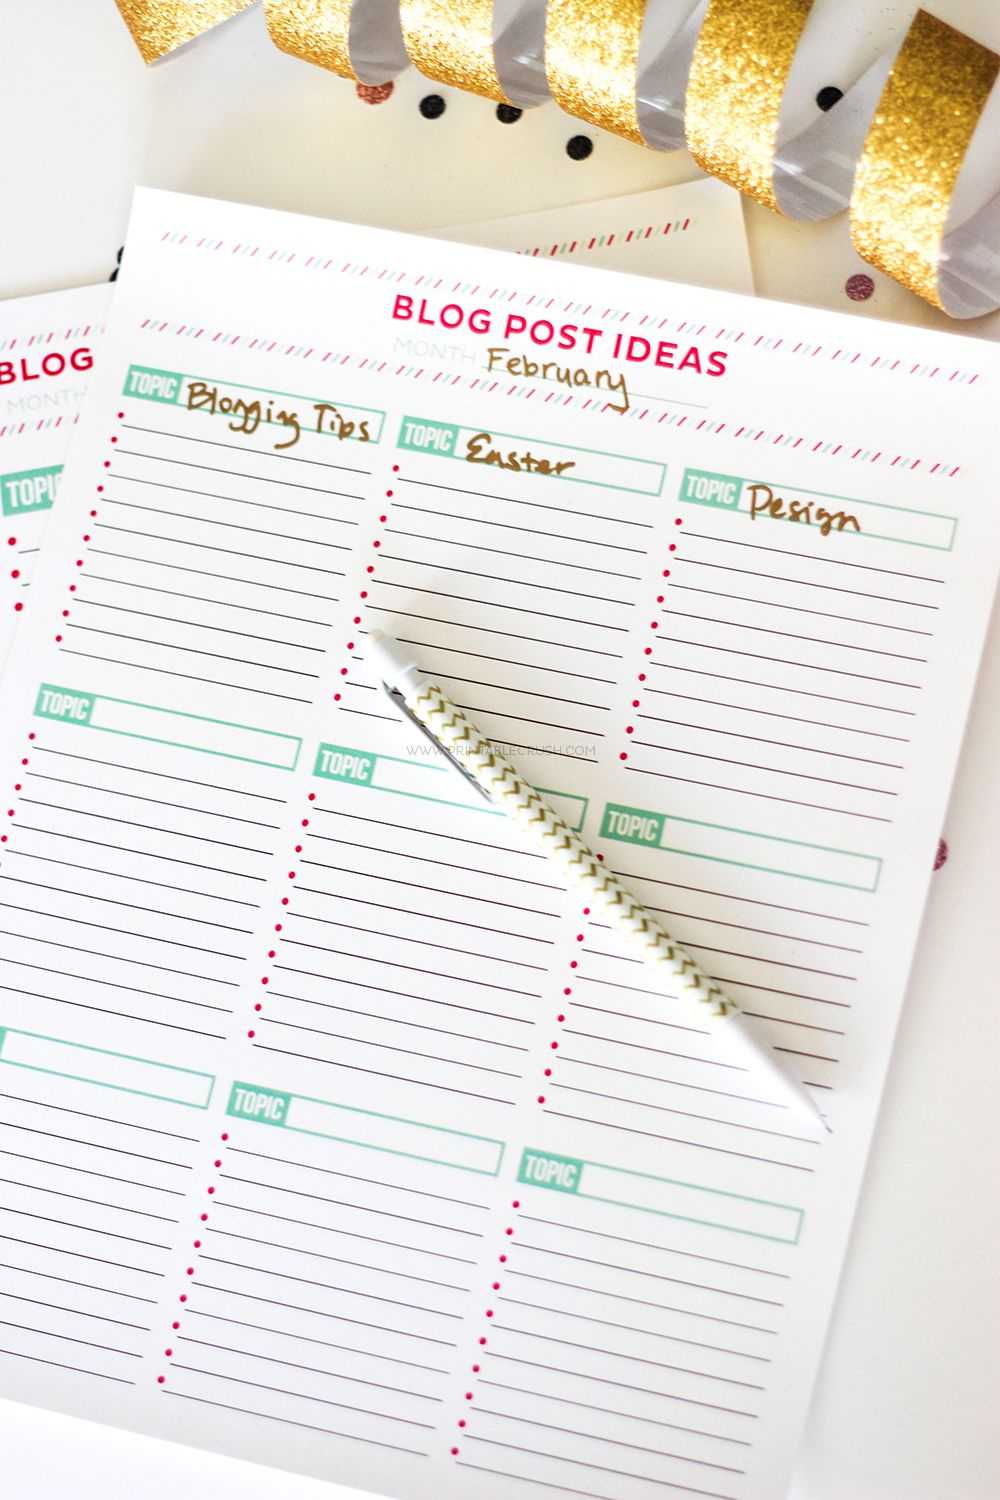 Brainstorm Blog Post Ideas With This Free Printable Worksheet | Blog | Blog Worksheet Printable